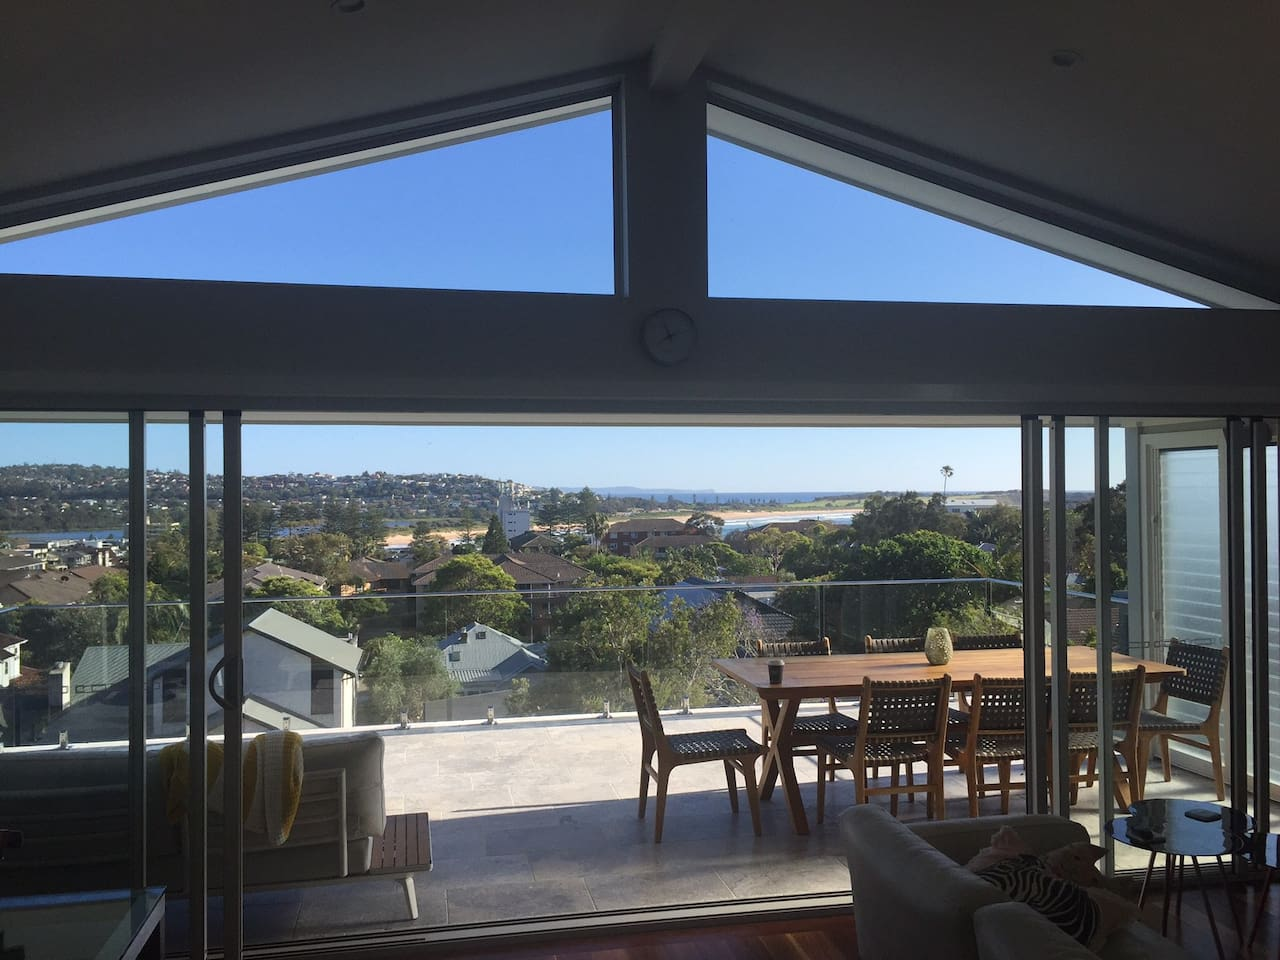 Beautifully renovated beach house with beach outlook and 2 min walk to Dee Why beach, cafes and restaurants